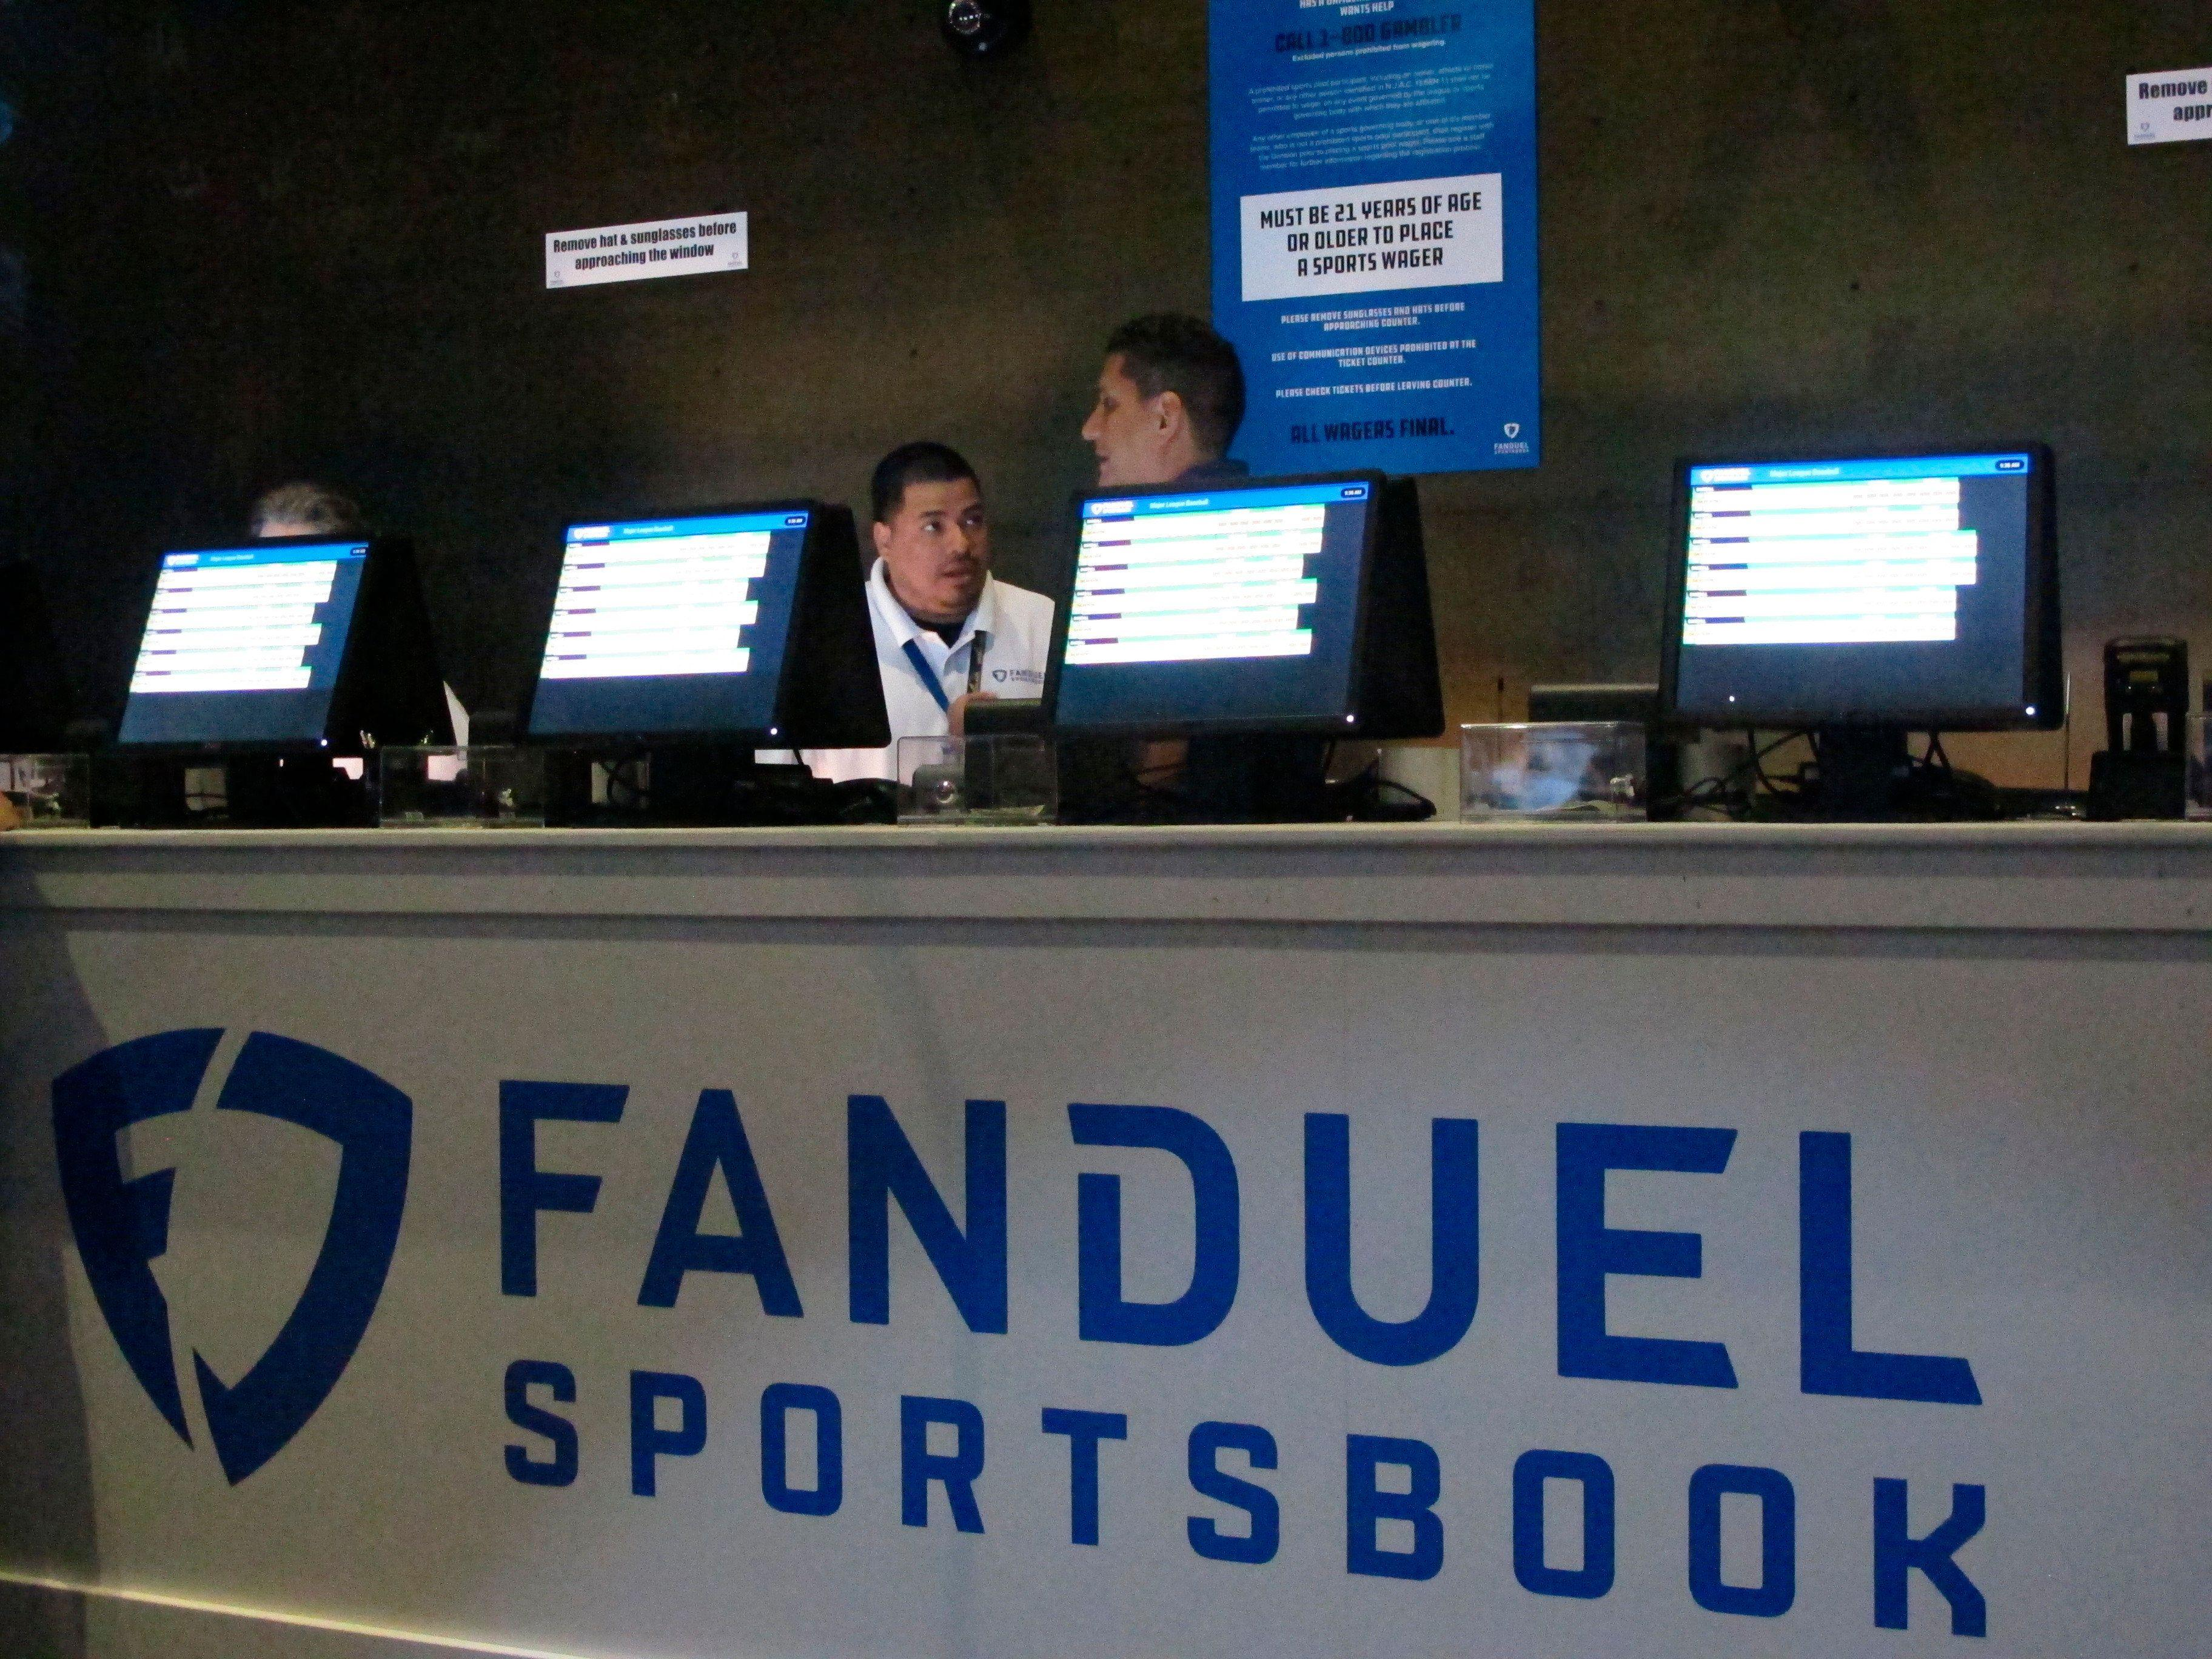 Ahead of NFL Draft, FanDuel CEO says sports betting will never be legalized across the country